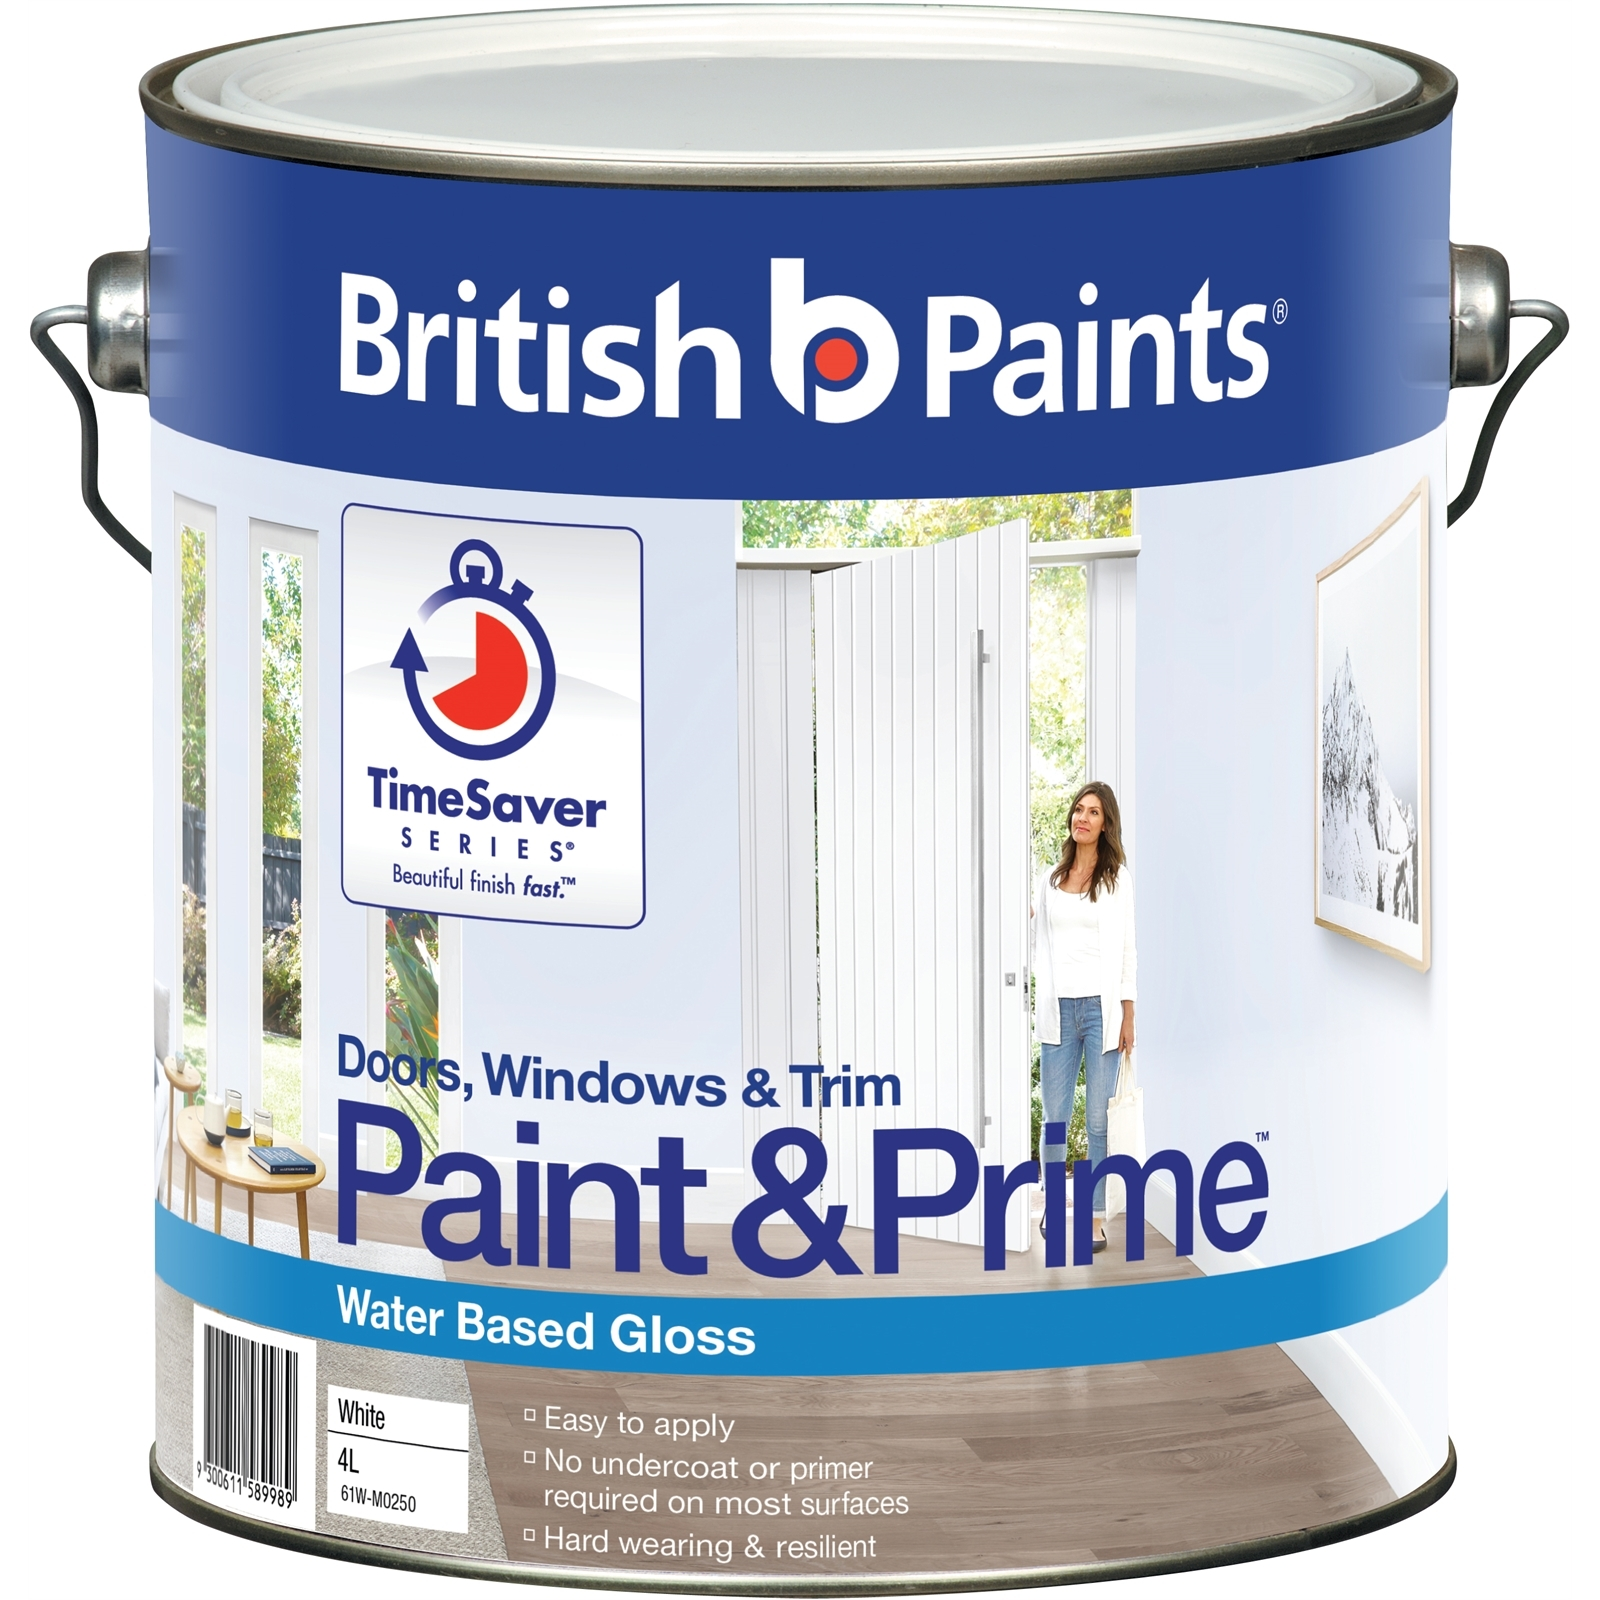 British Paints 4L Paint And Prime Gloss White Doors Windows And Trim Water Based Paint